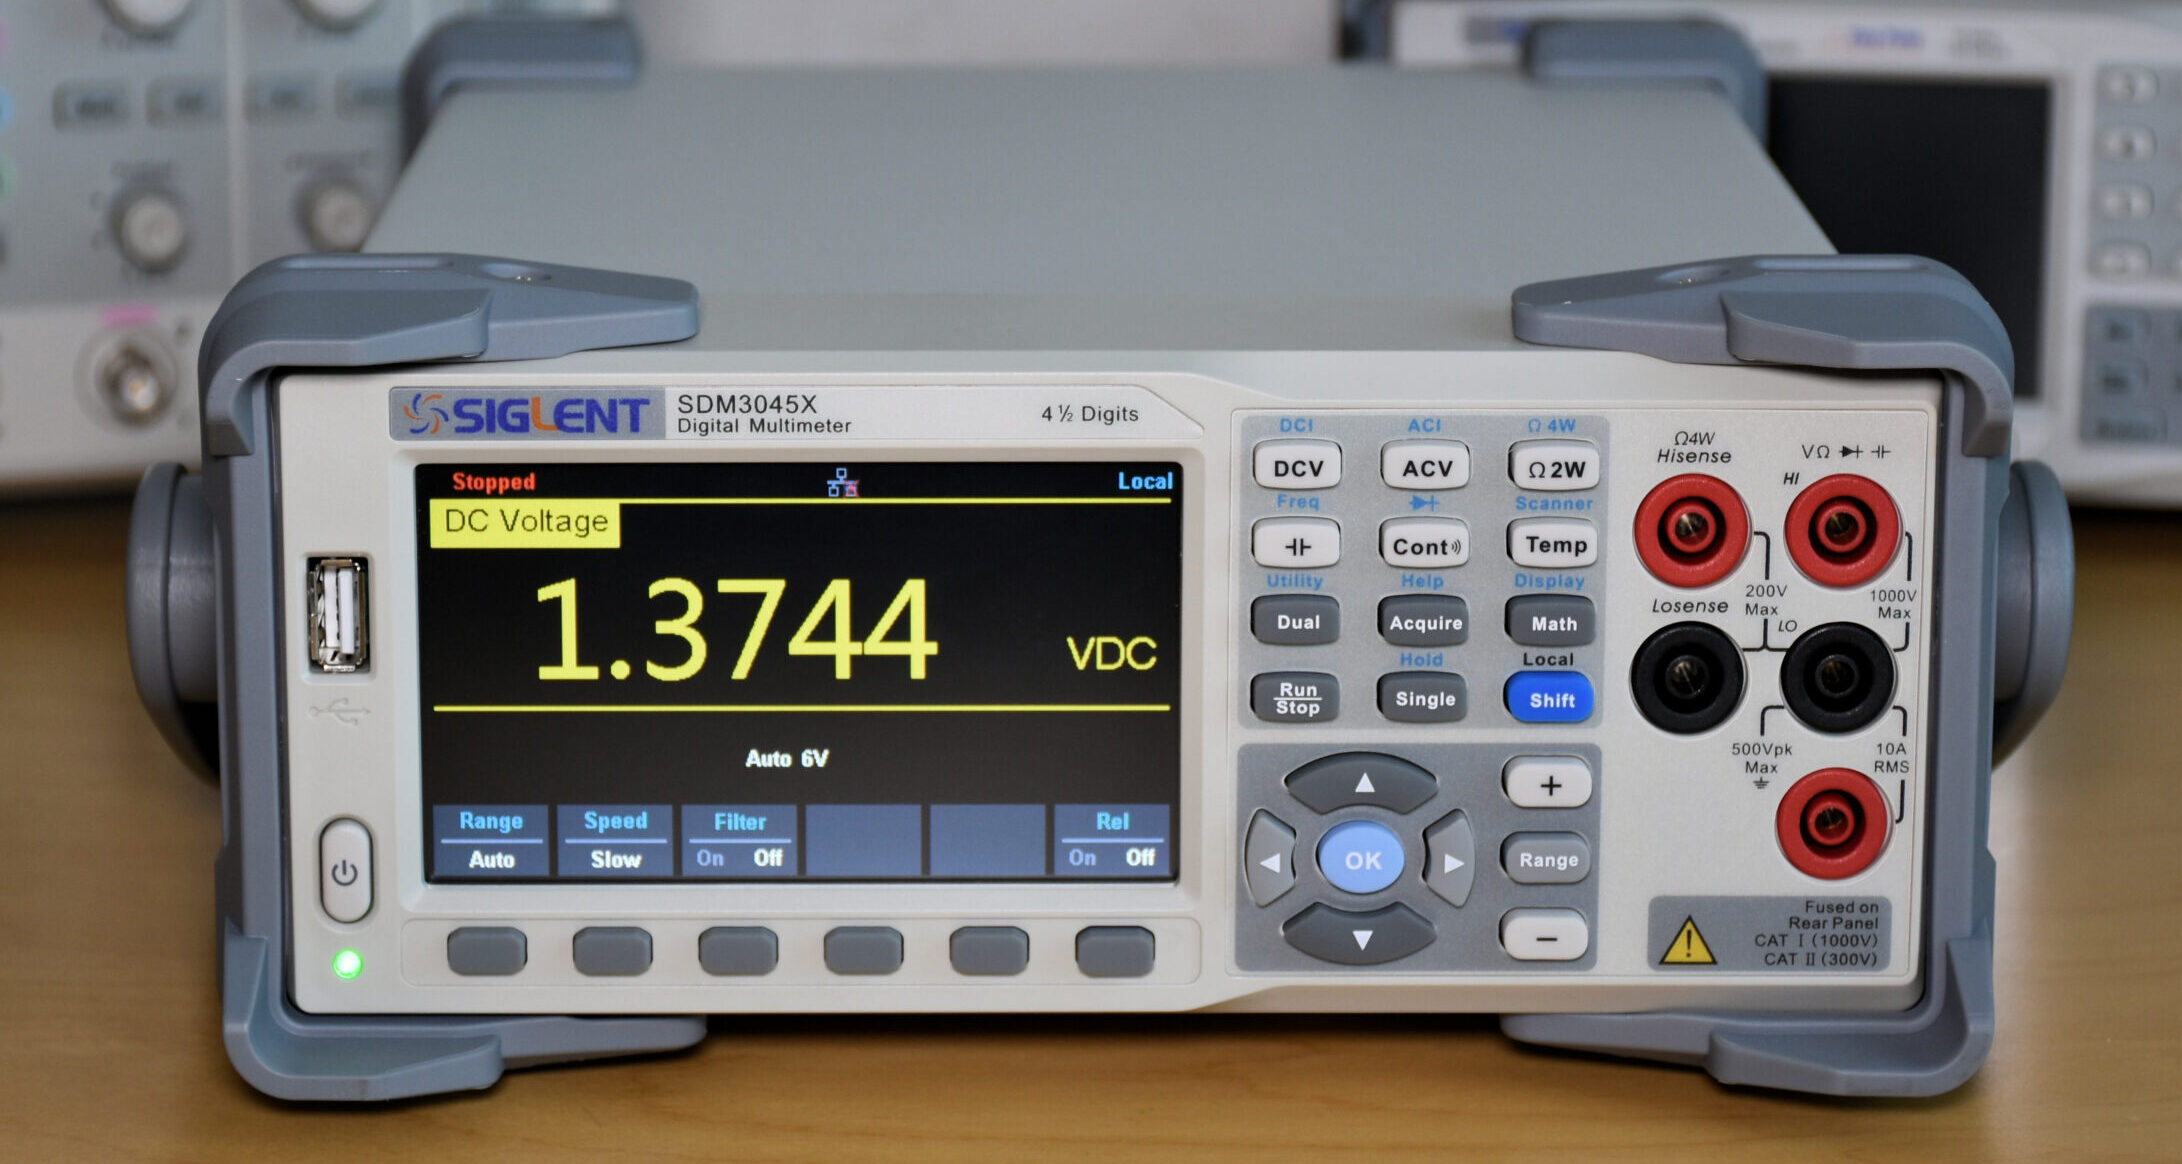 Elektor Review: Siglent Bench Multimeter SDM3045X